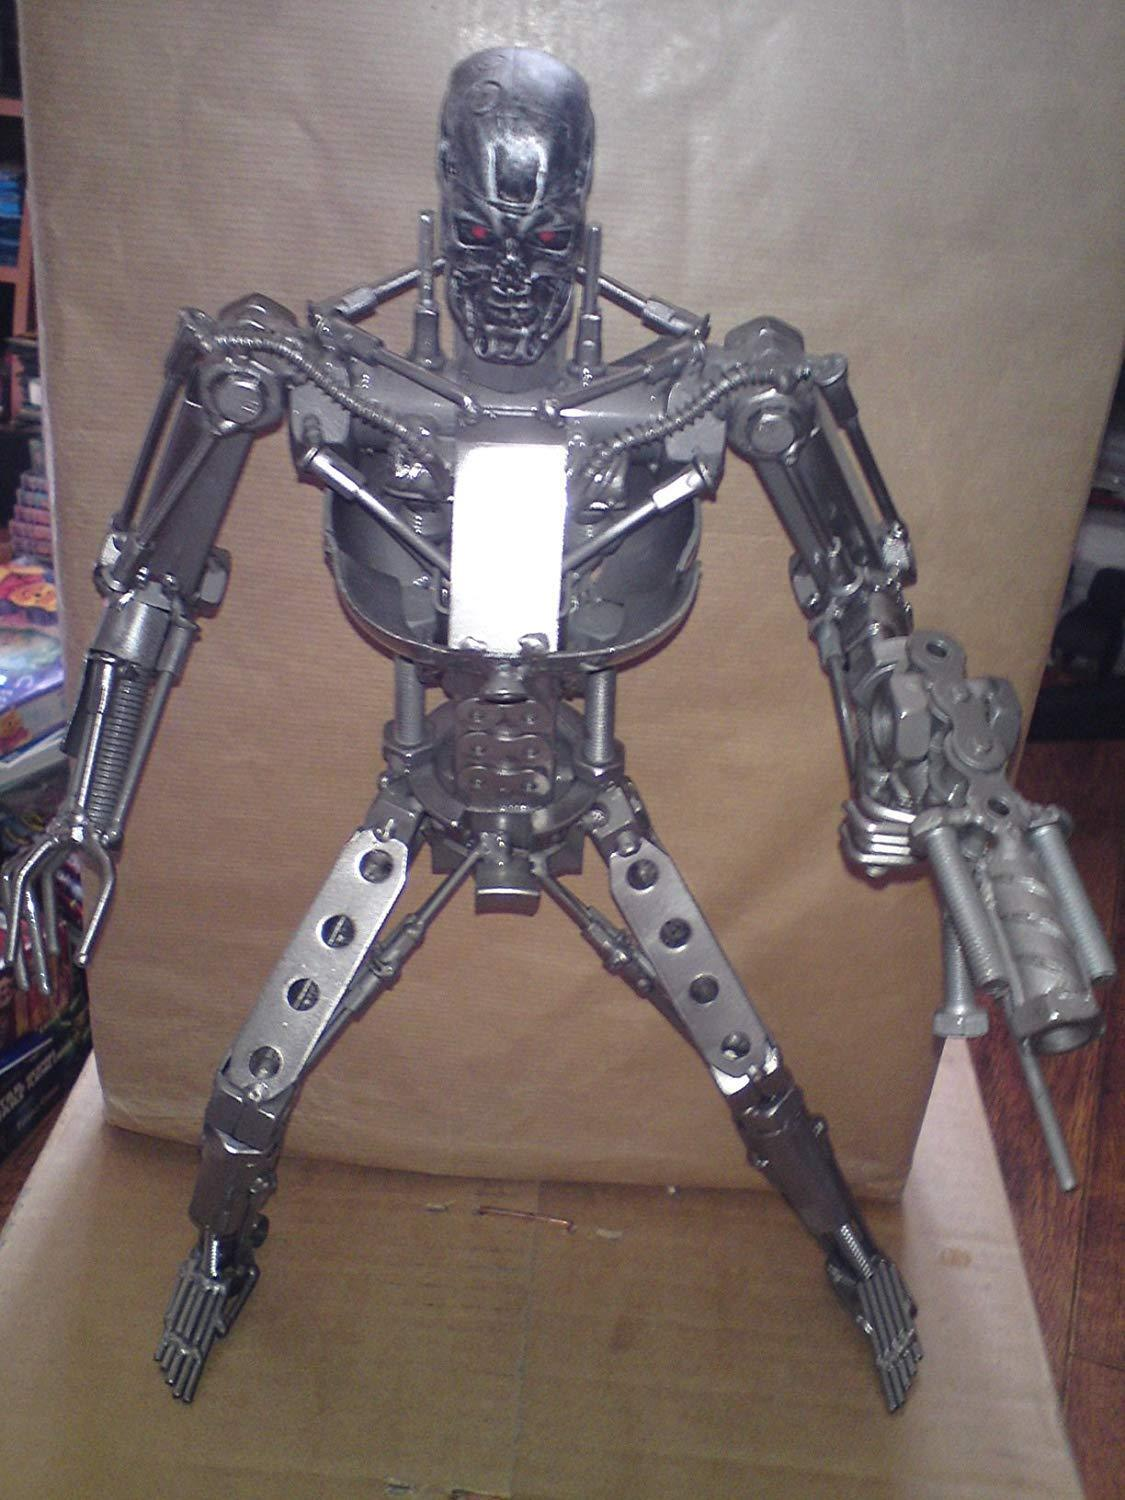 The terminator - t-800 terminator metal sculpture (nut & bolts etc) over 14 inch